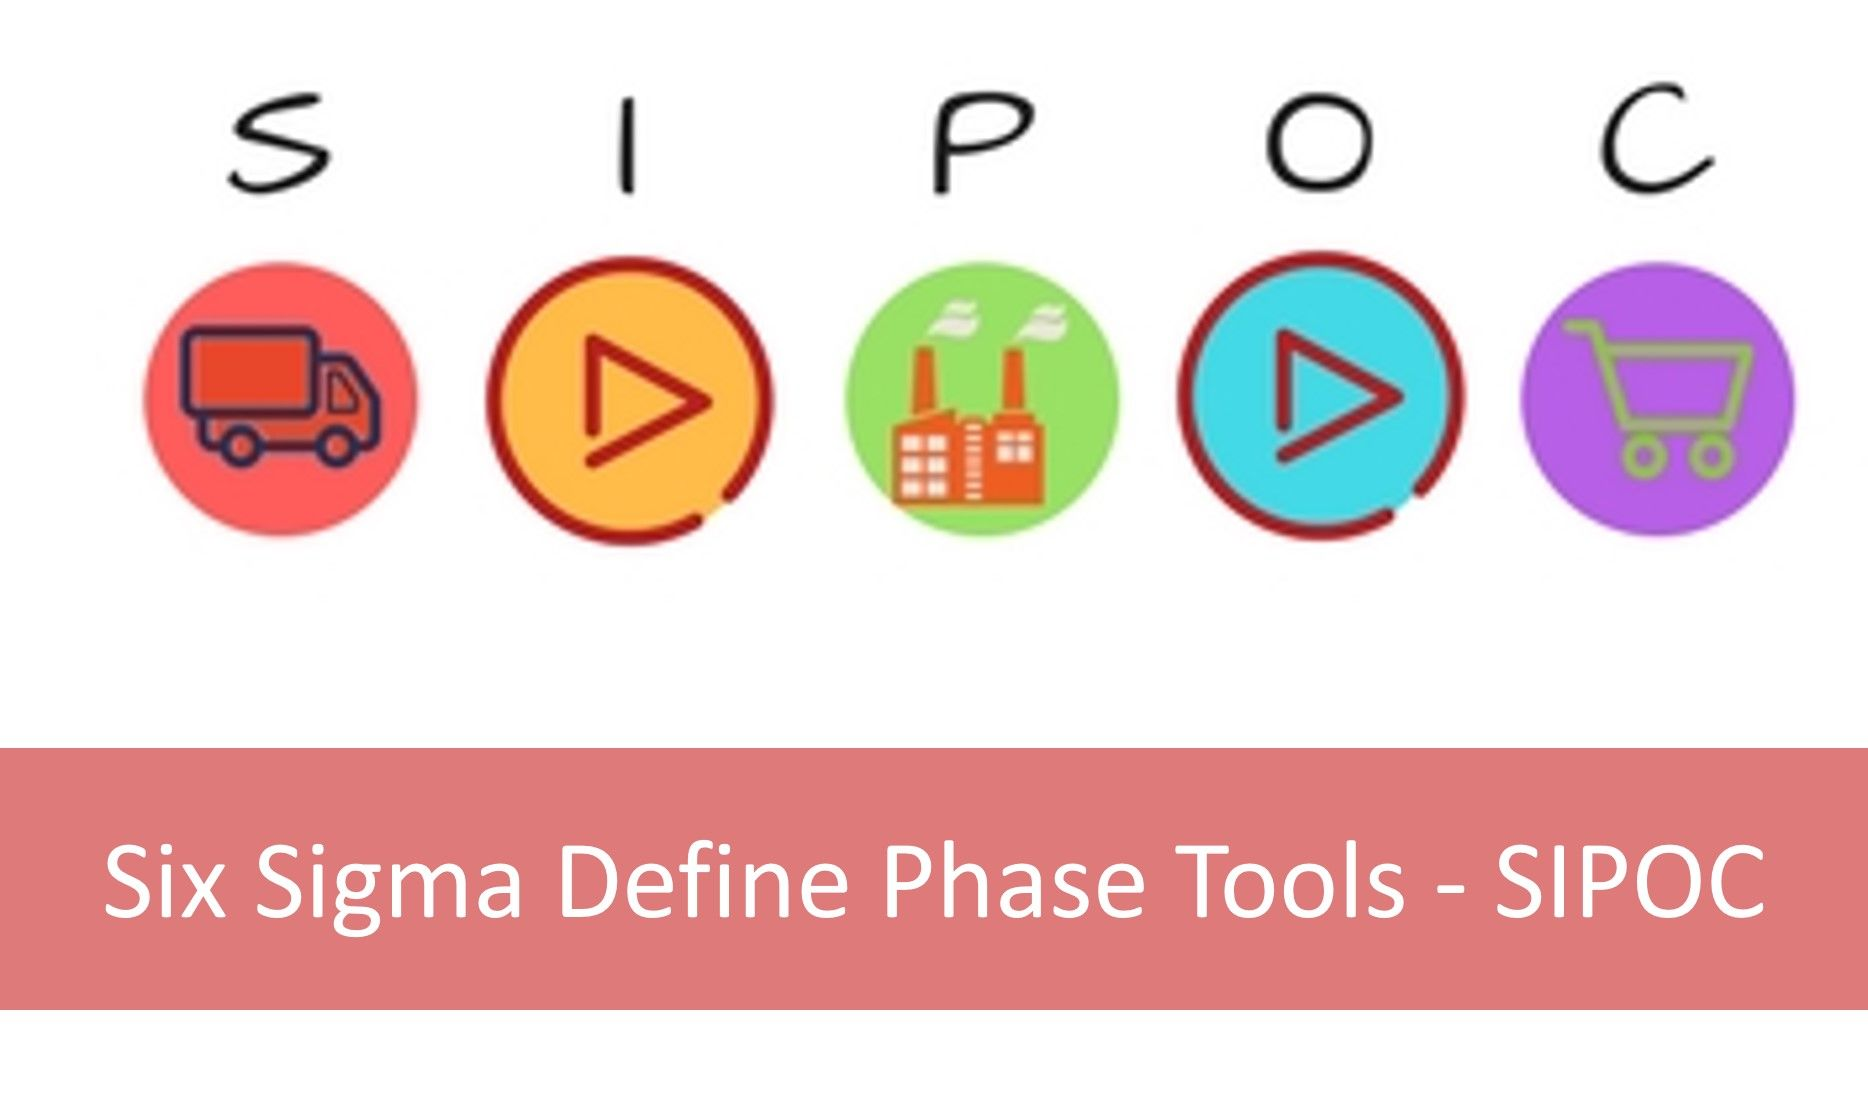 7 Steps To Create Sipoc Diagram In Six Sigma Master Of Project Process Flow Academy Blog